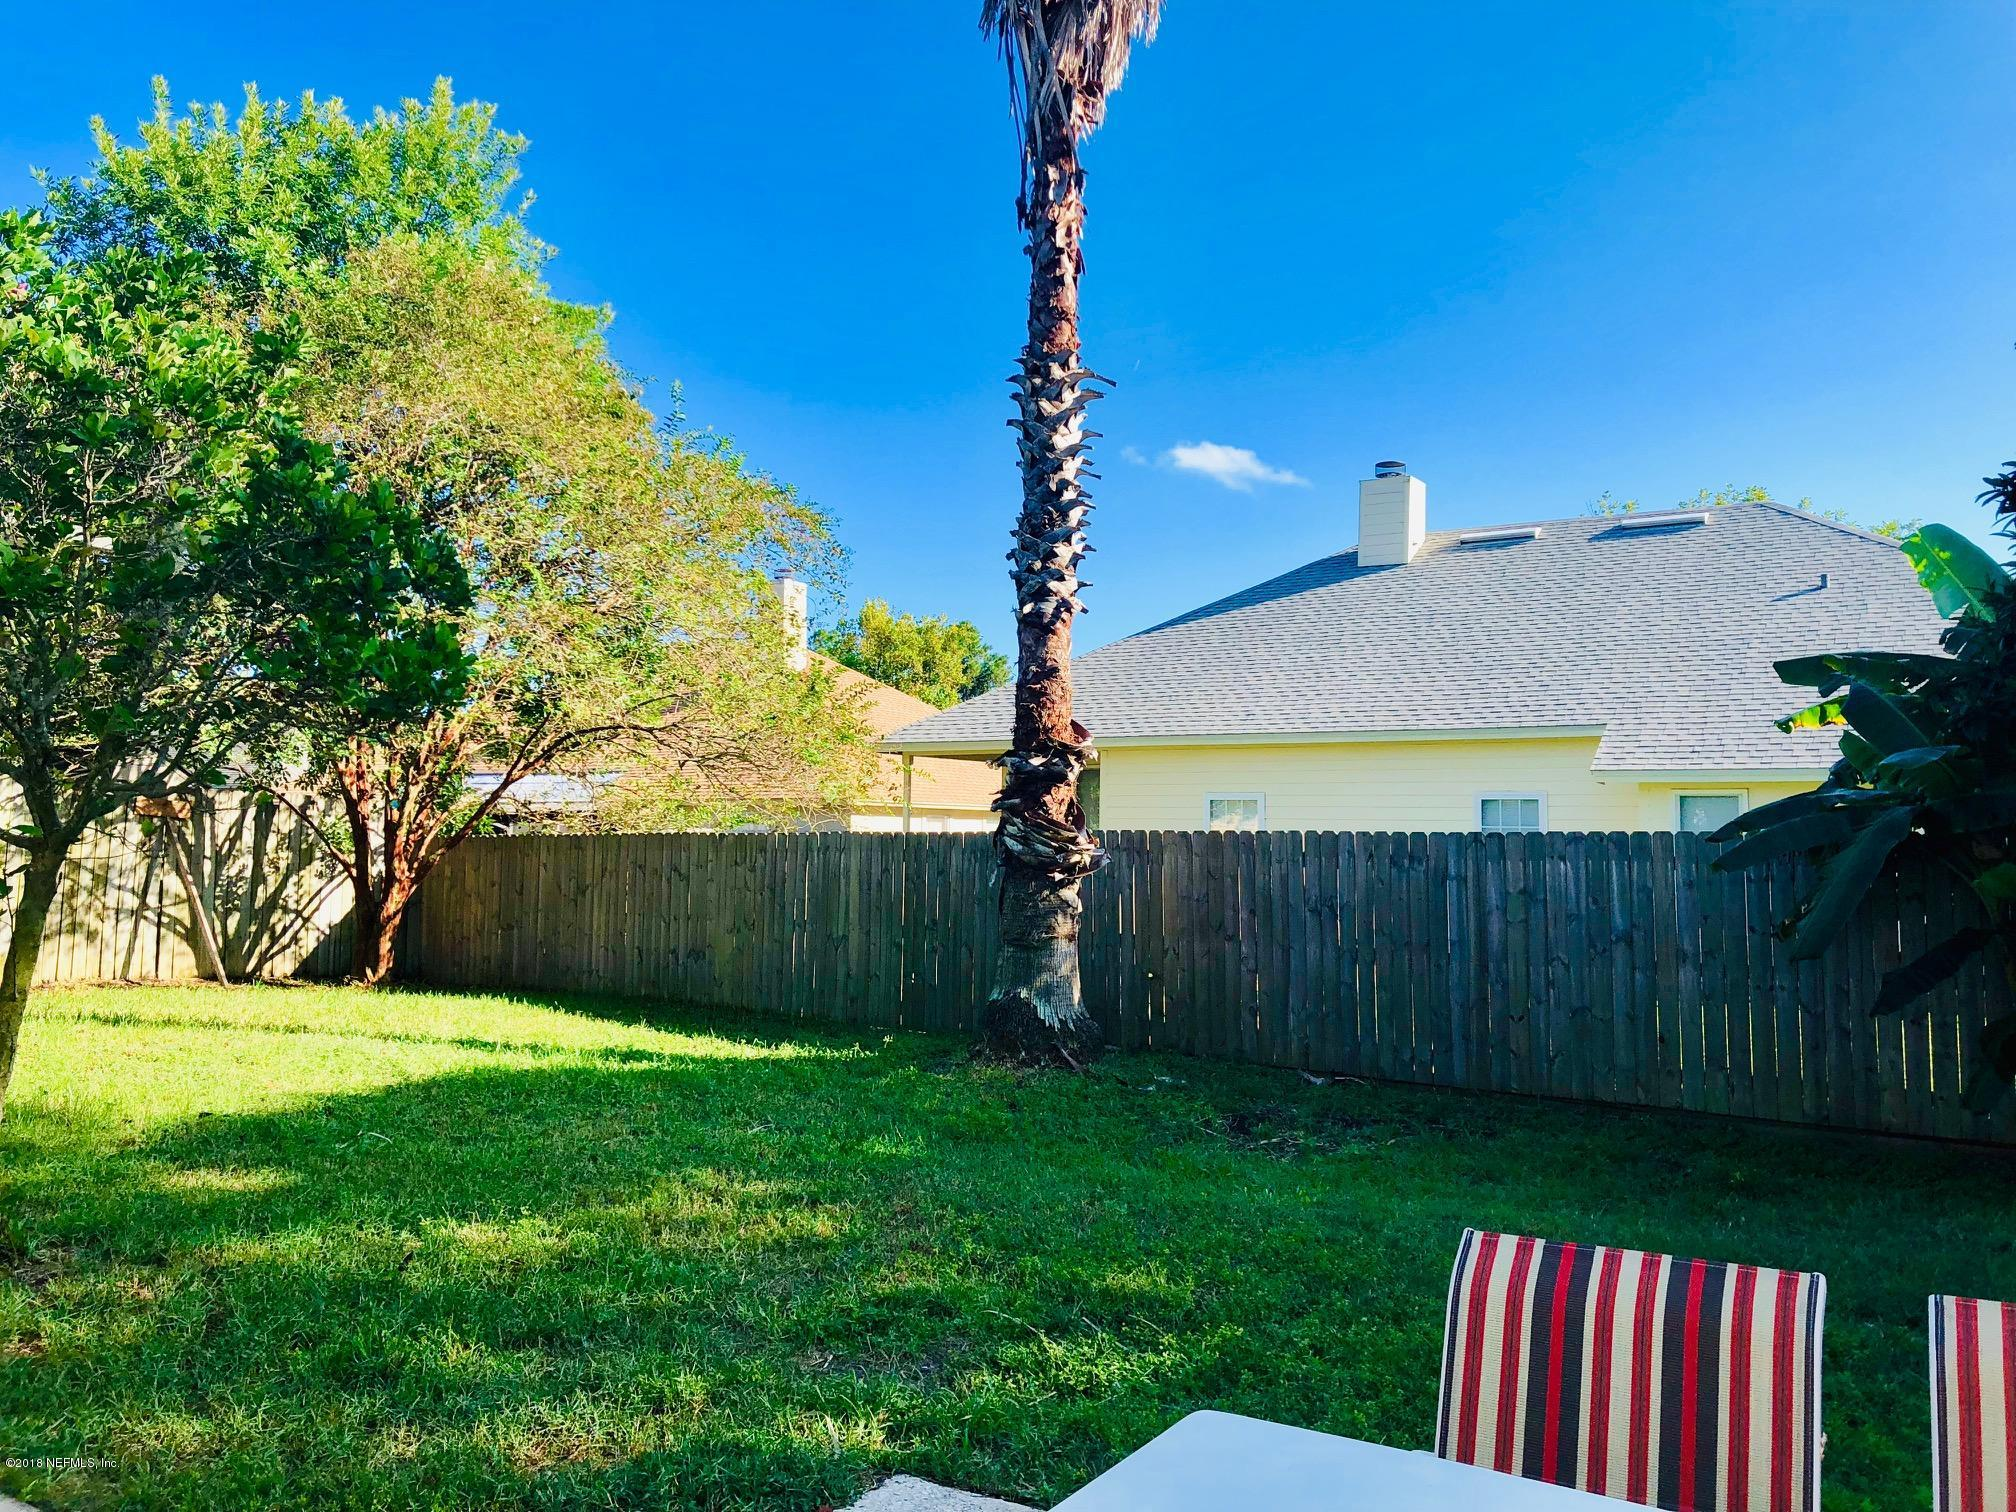 12270 SCOTTS COVE, JACKSONVILLE, FLORIDA 32225, 4 Bedrooms Bedrooms, ,2 BathroomsBathrooms,Residential - single family,For sale,SCOTTS COVE,959202